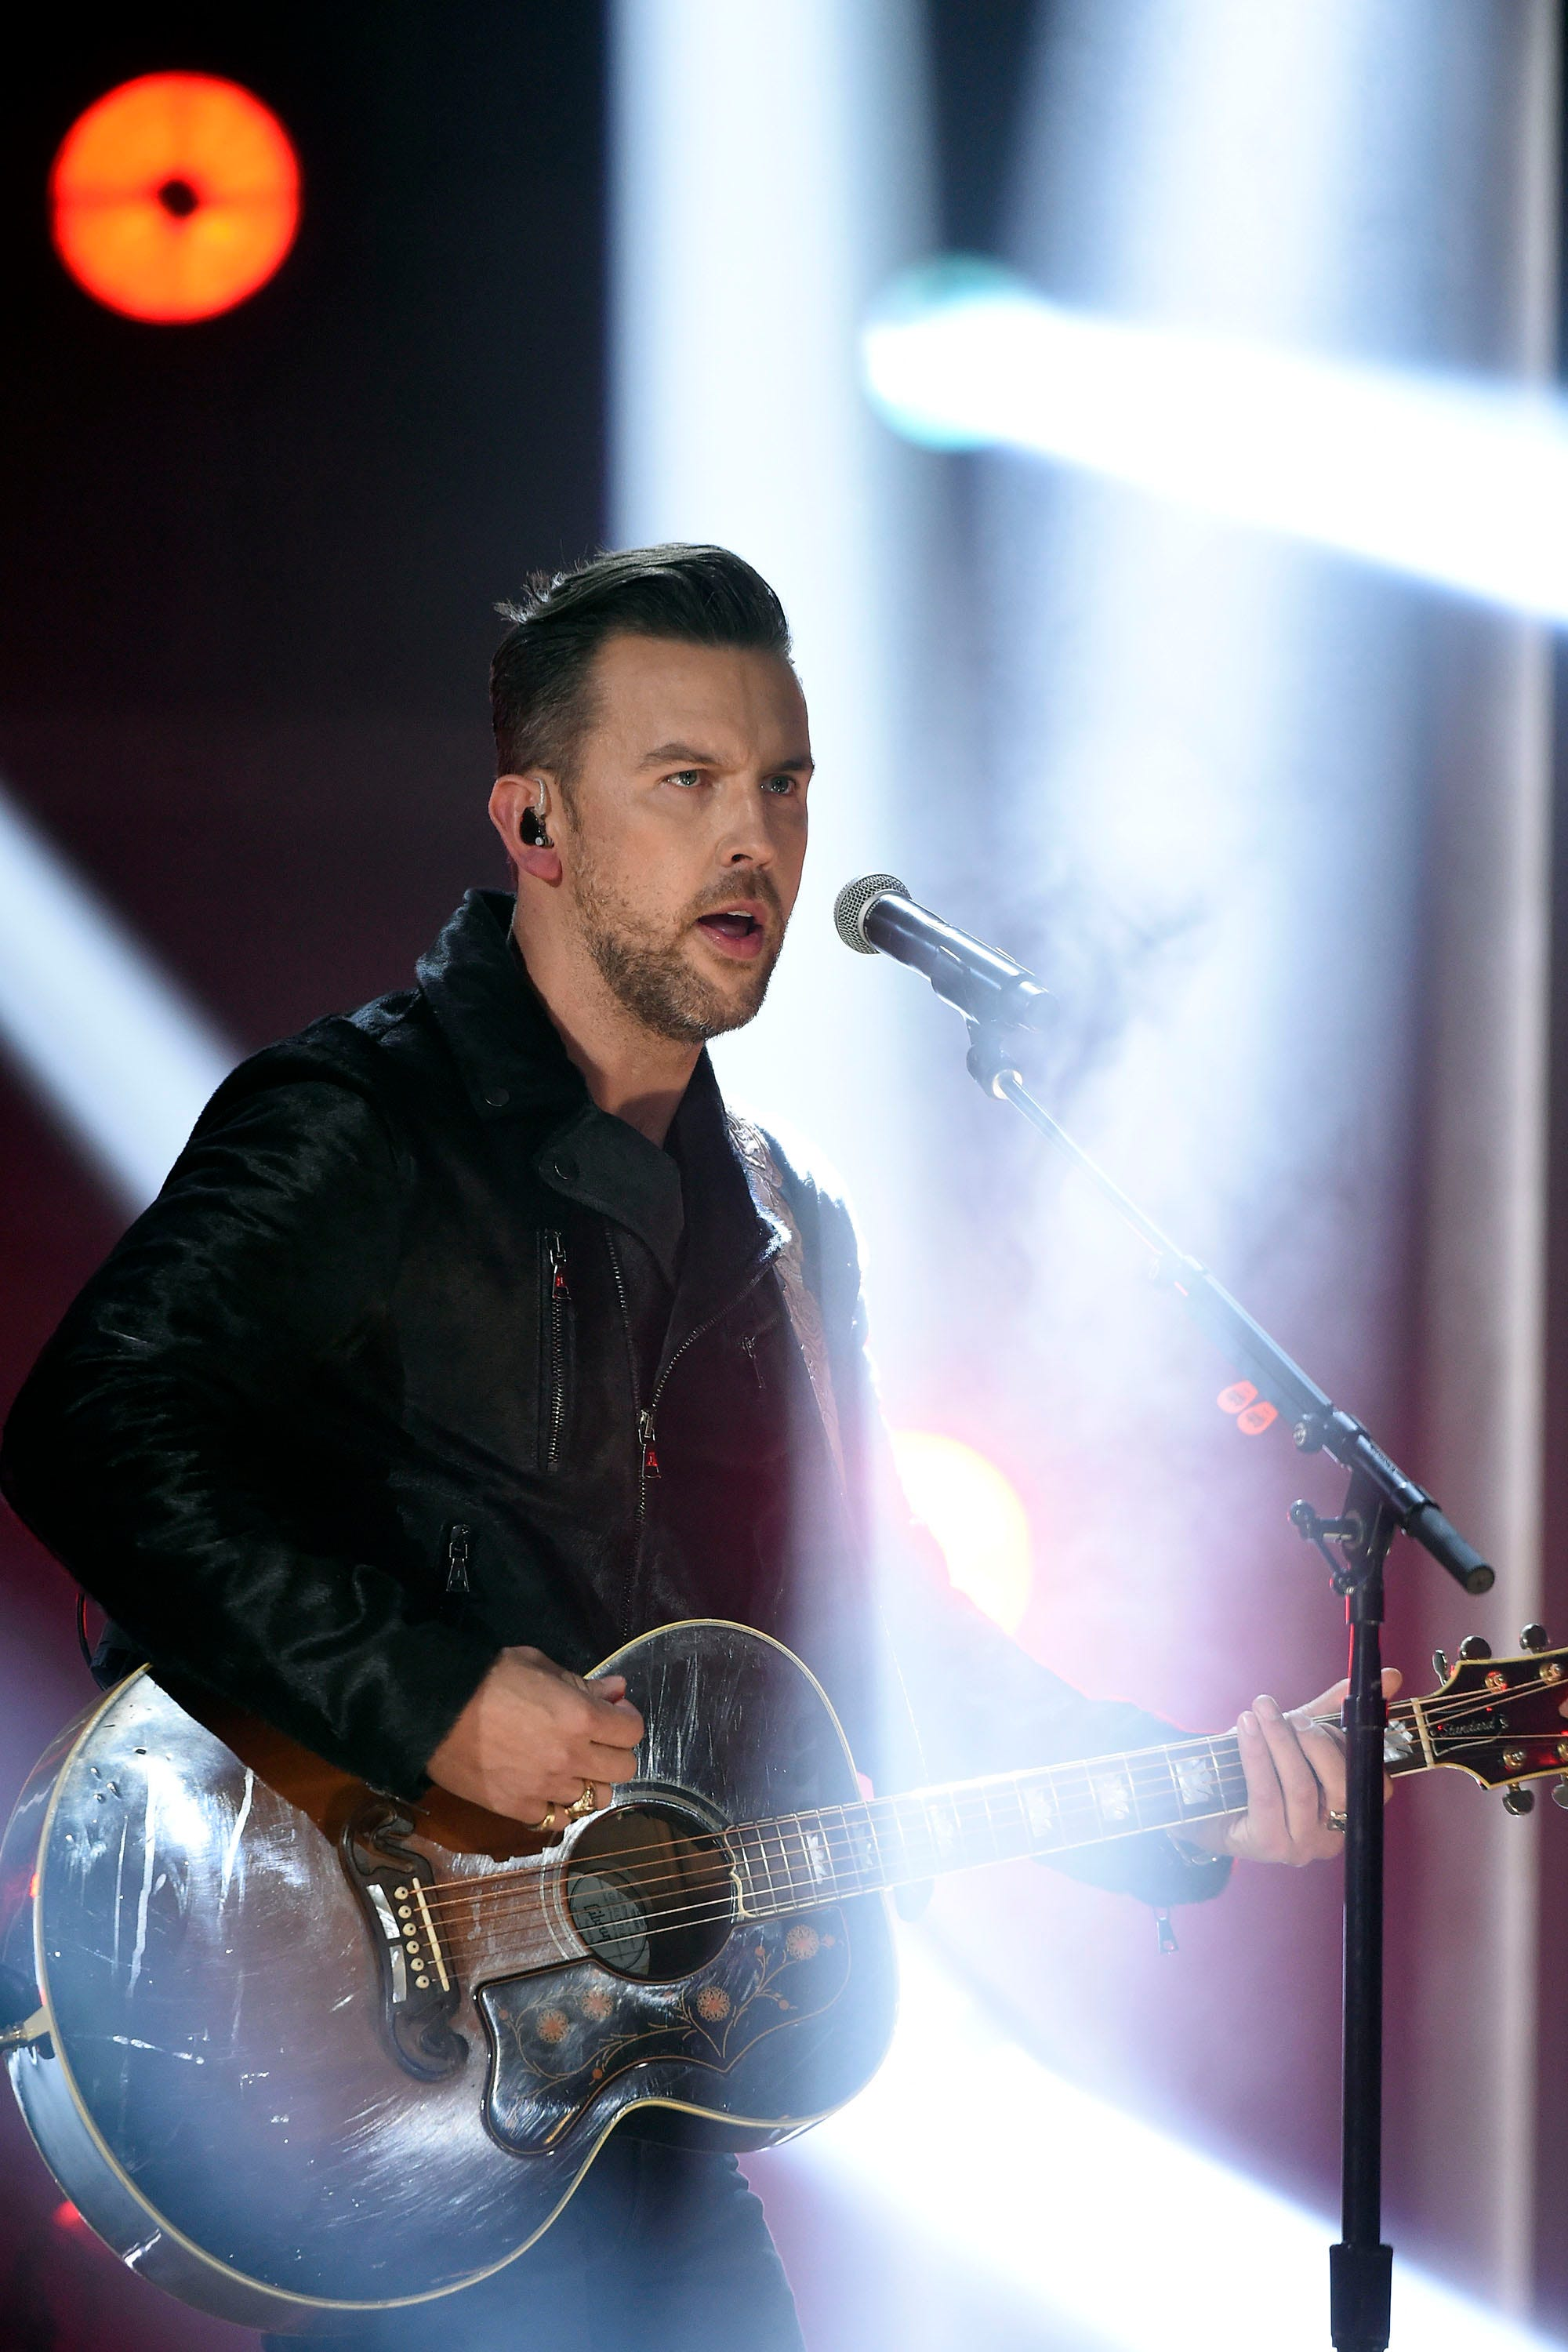 Tennessee lawmaker blocks vote to honor gay country star T.J. Osborne